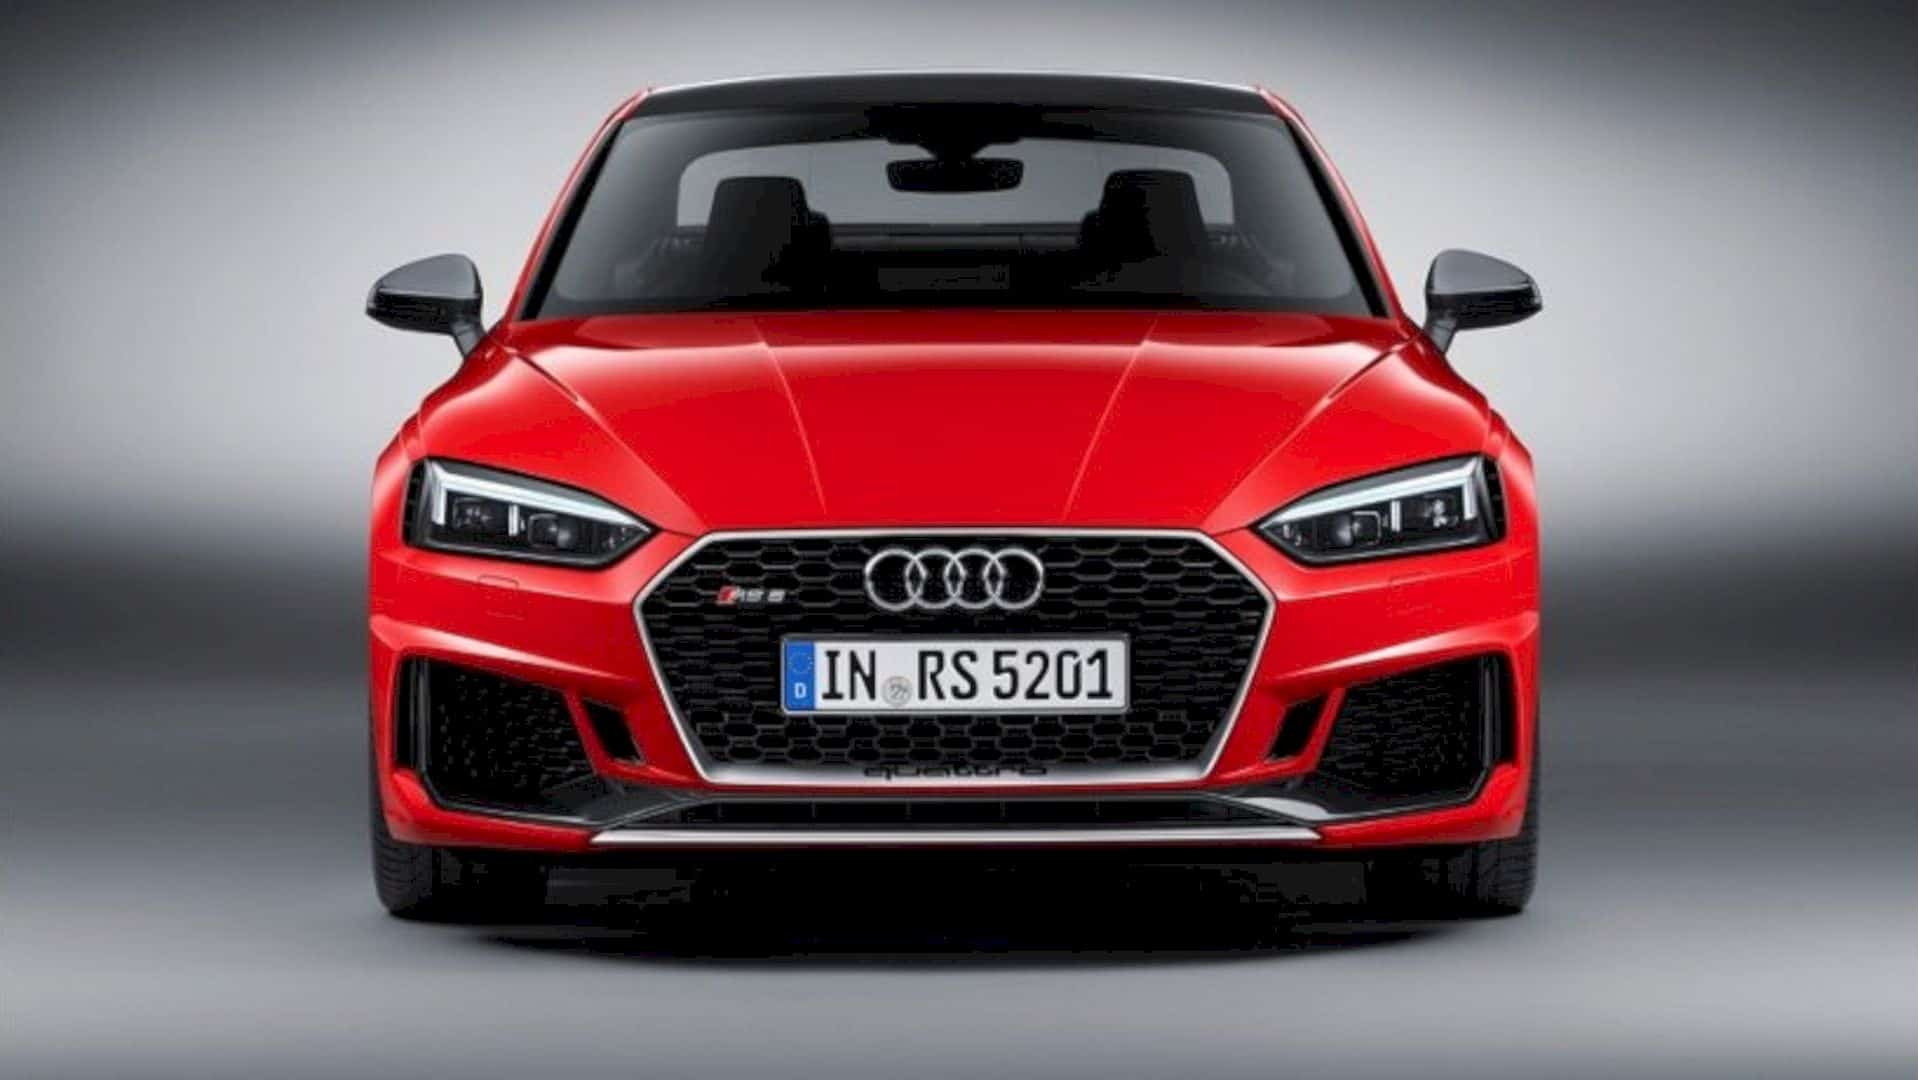 2018 Audi Rs 5 Coupe 6